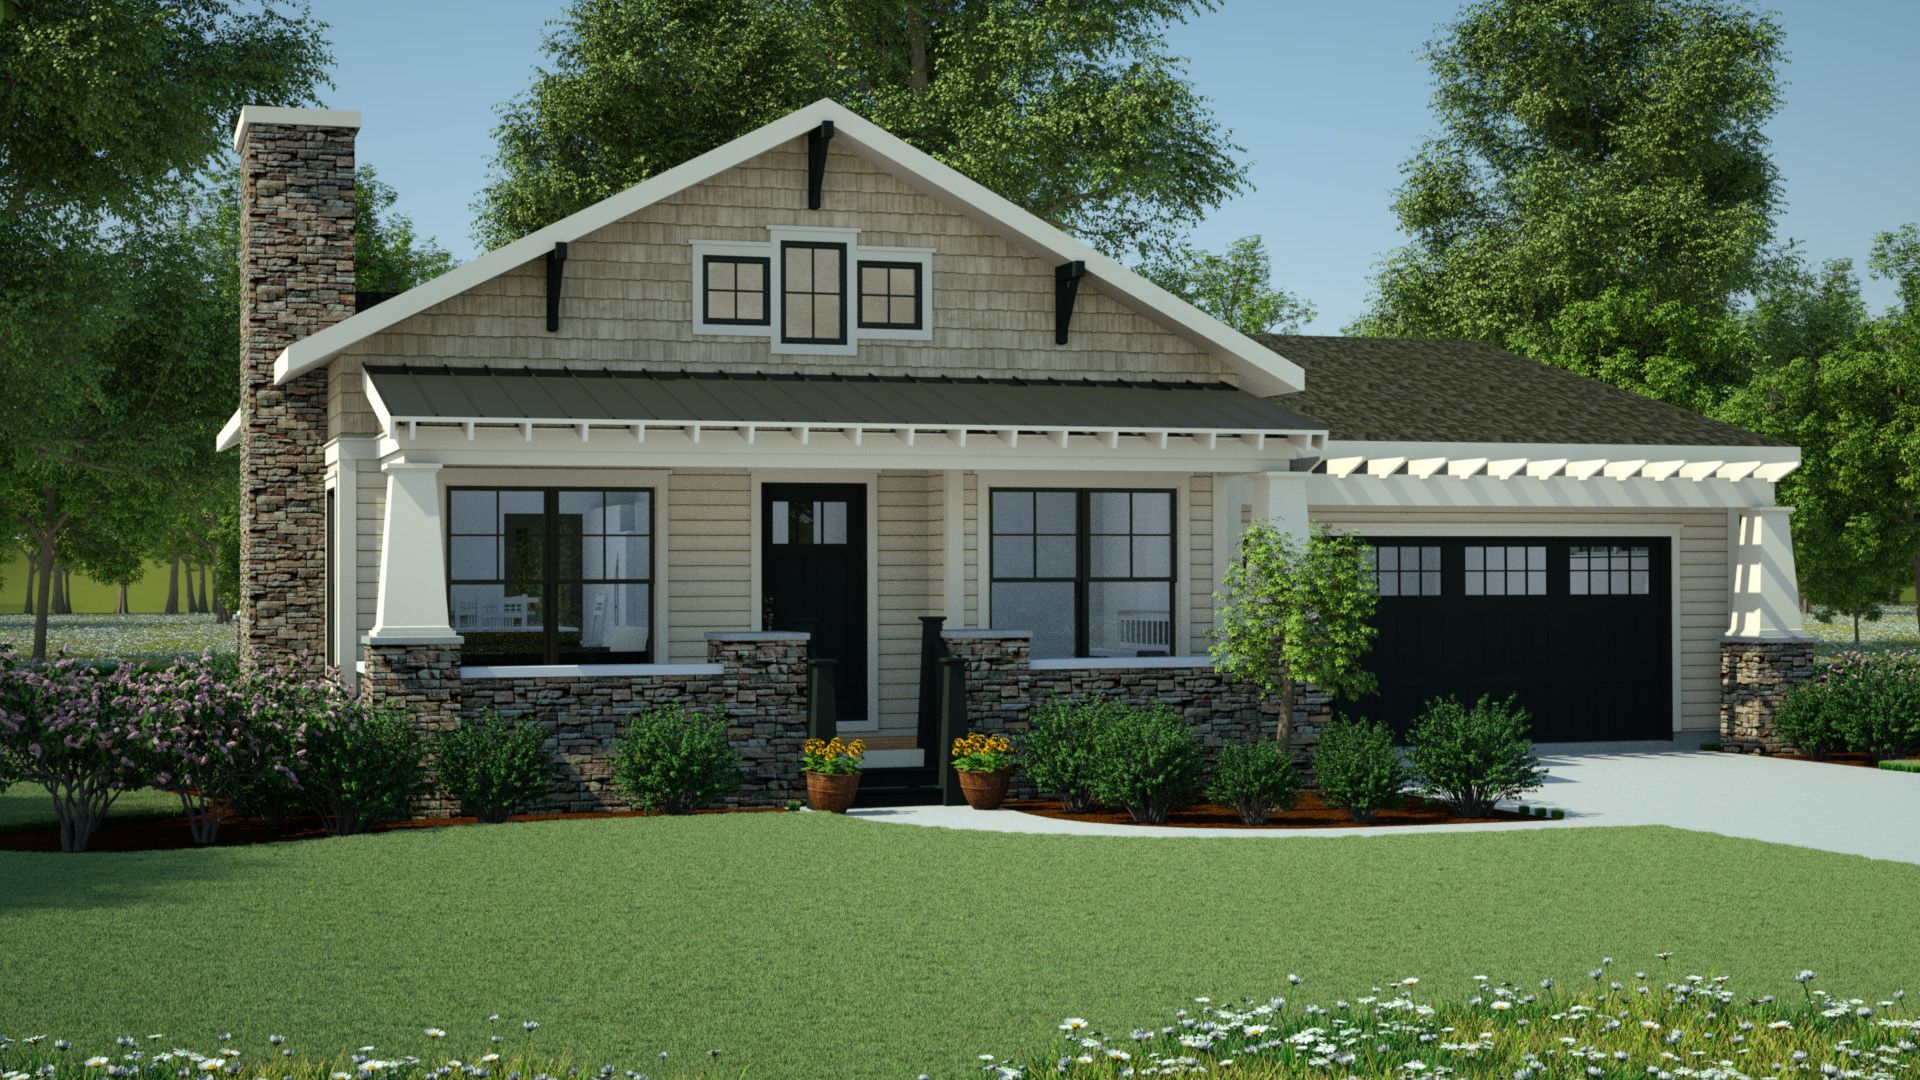 One Story Craftsman Style Bungalow House Plans